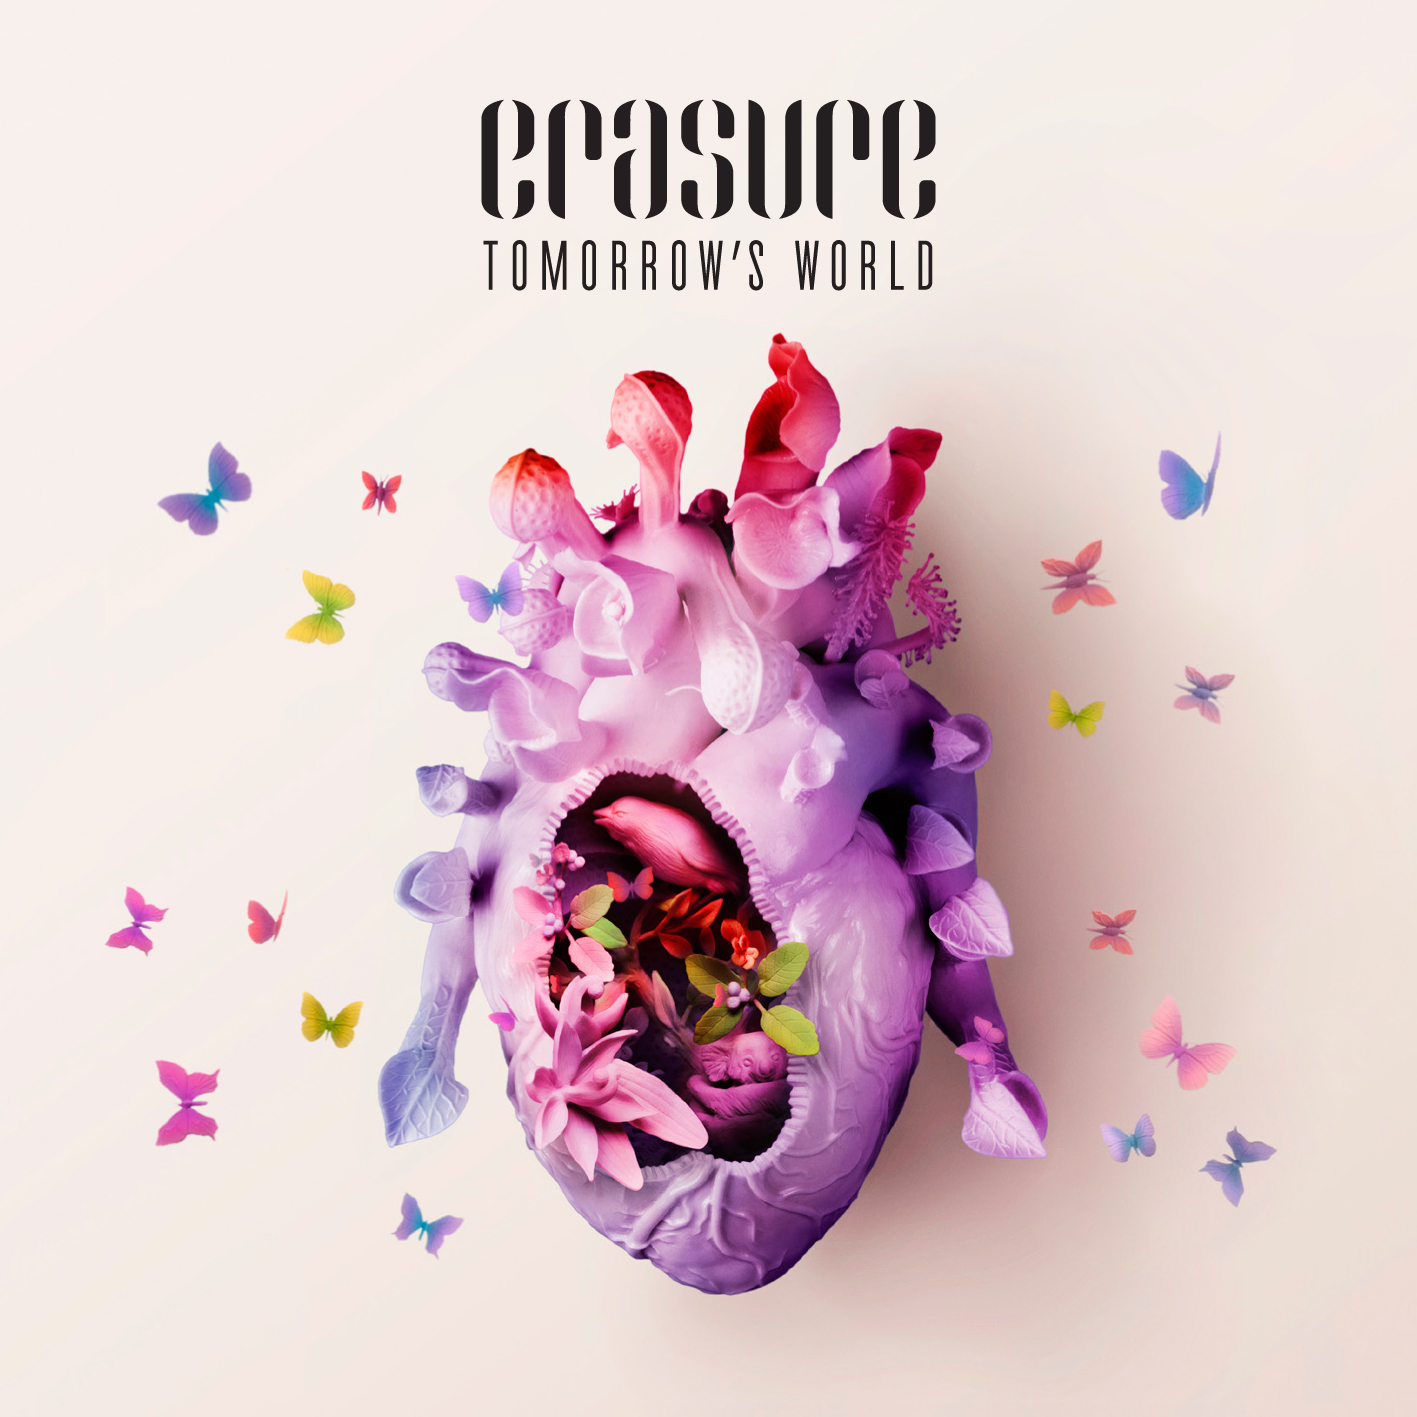 Erasure Tomorrow´s World Deluxe Edition (Erasure)